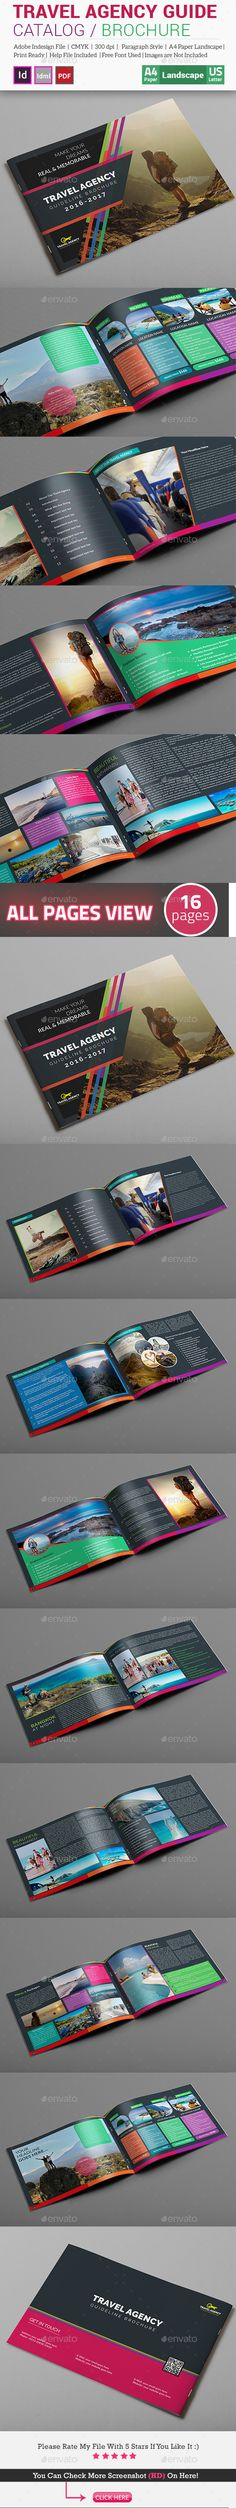 Travel Agency Guide Catalog / Brochure  InDesign Template • Download ➝ https://graphicriver.net/item/travel-agency-guide-catalog-brochure/15488826?ref=pxcr